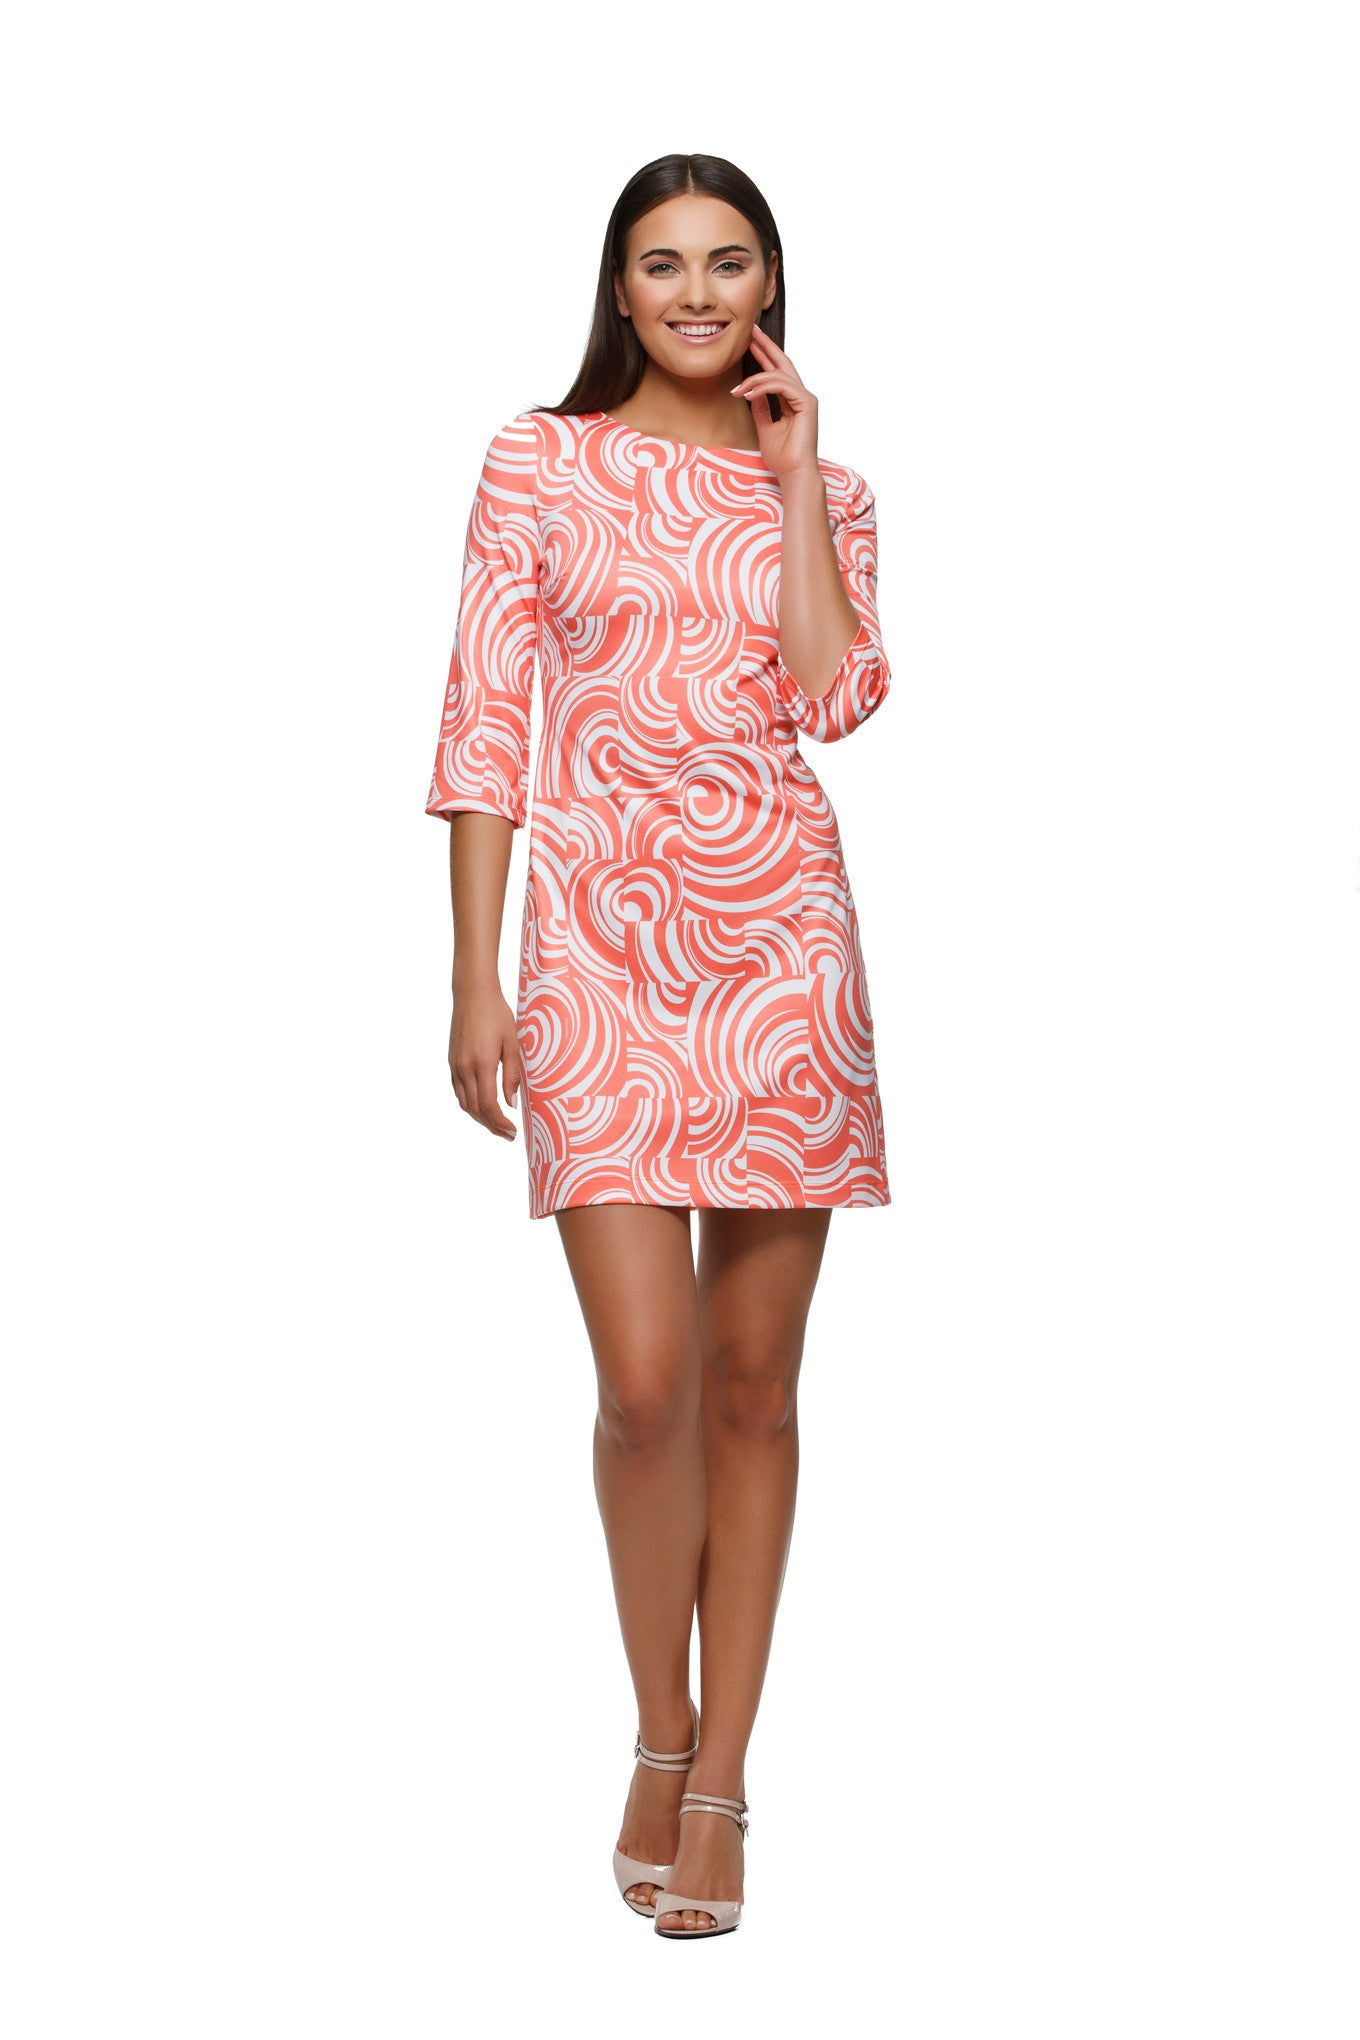 Skylar-womens-three-quarter-sleeve-boatneck-dress--in-orange-and-white-swirl-by-Rulon-Reed